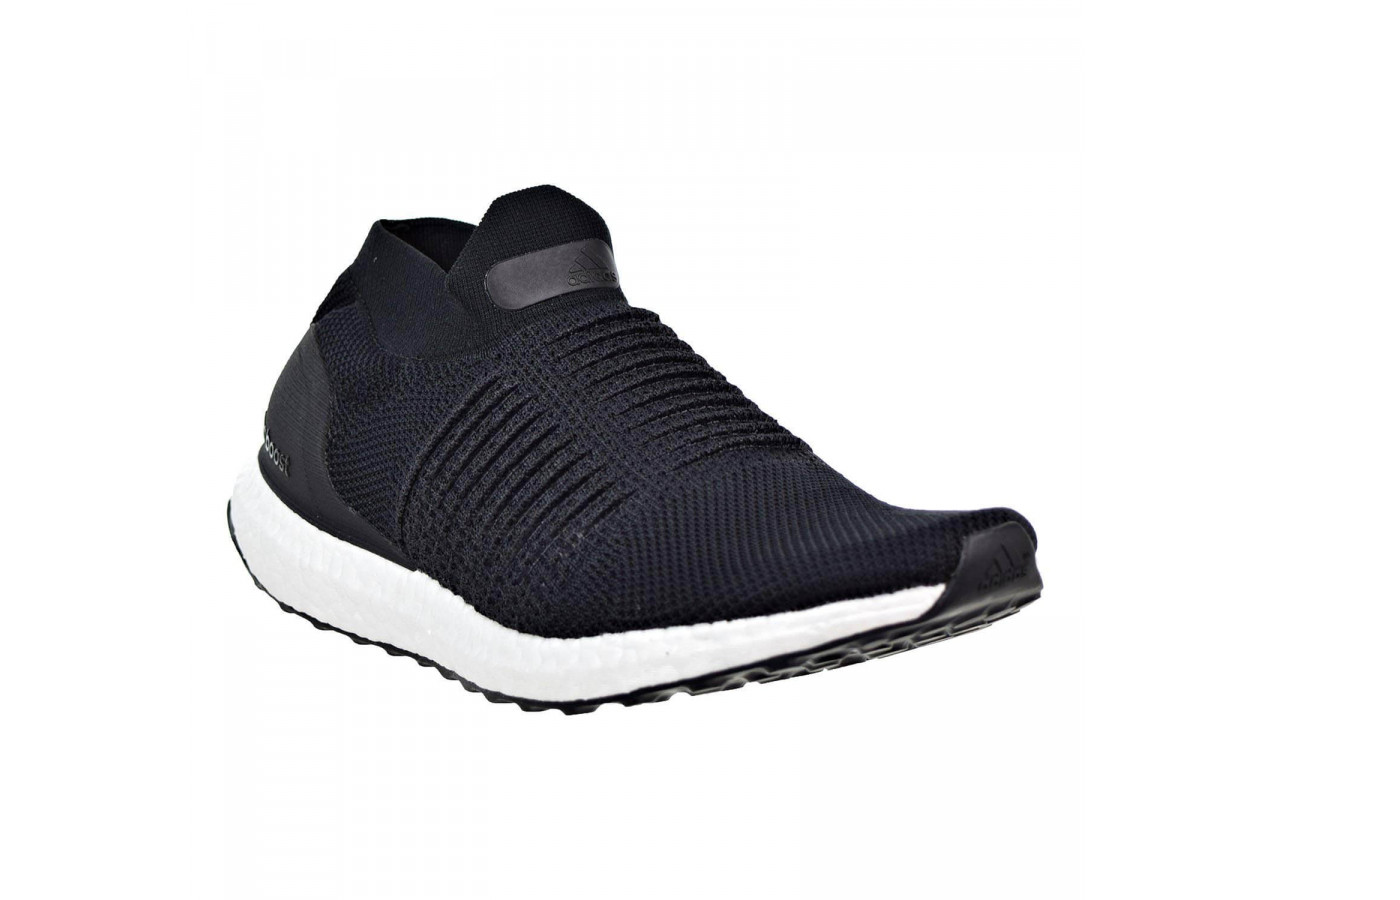 c7c98123de26 The Adidas Ultra Boost Laceless comes in very few colors.